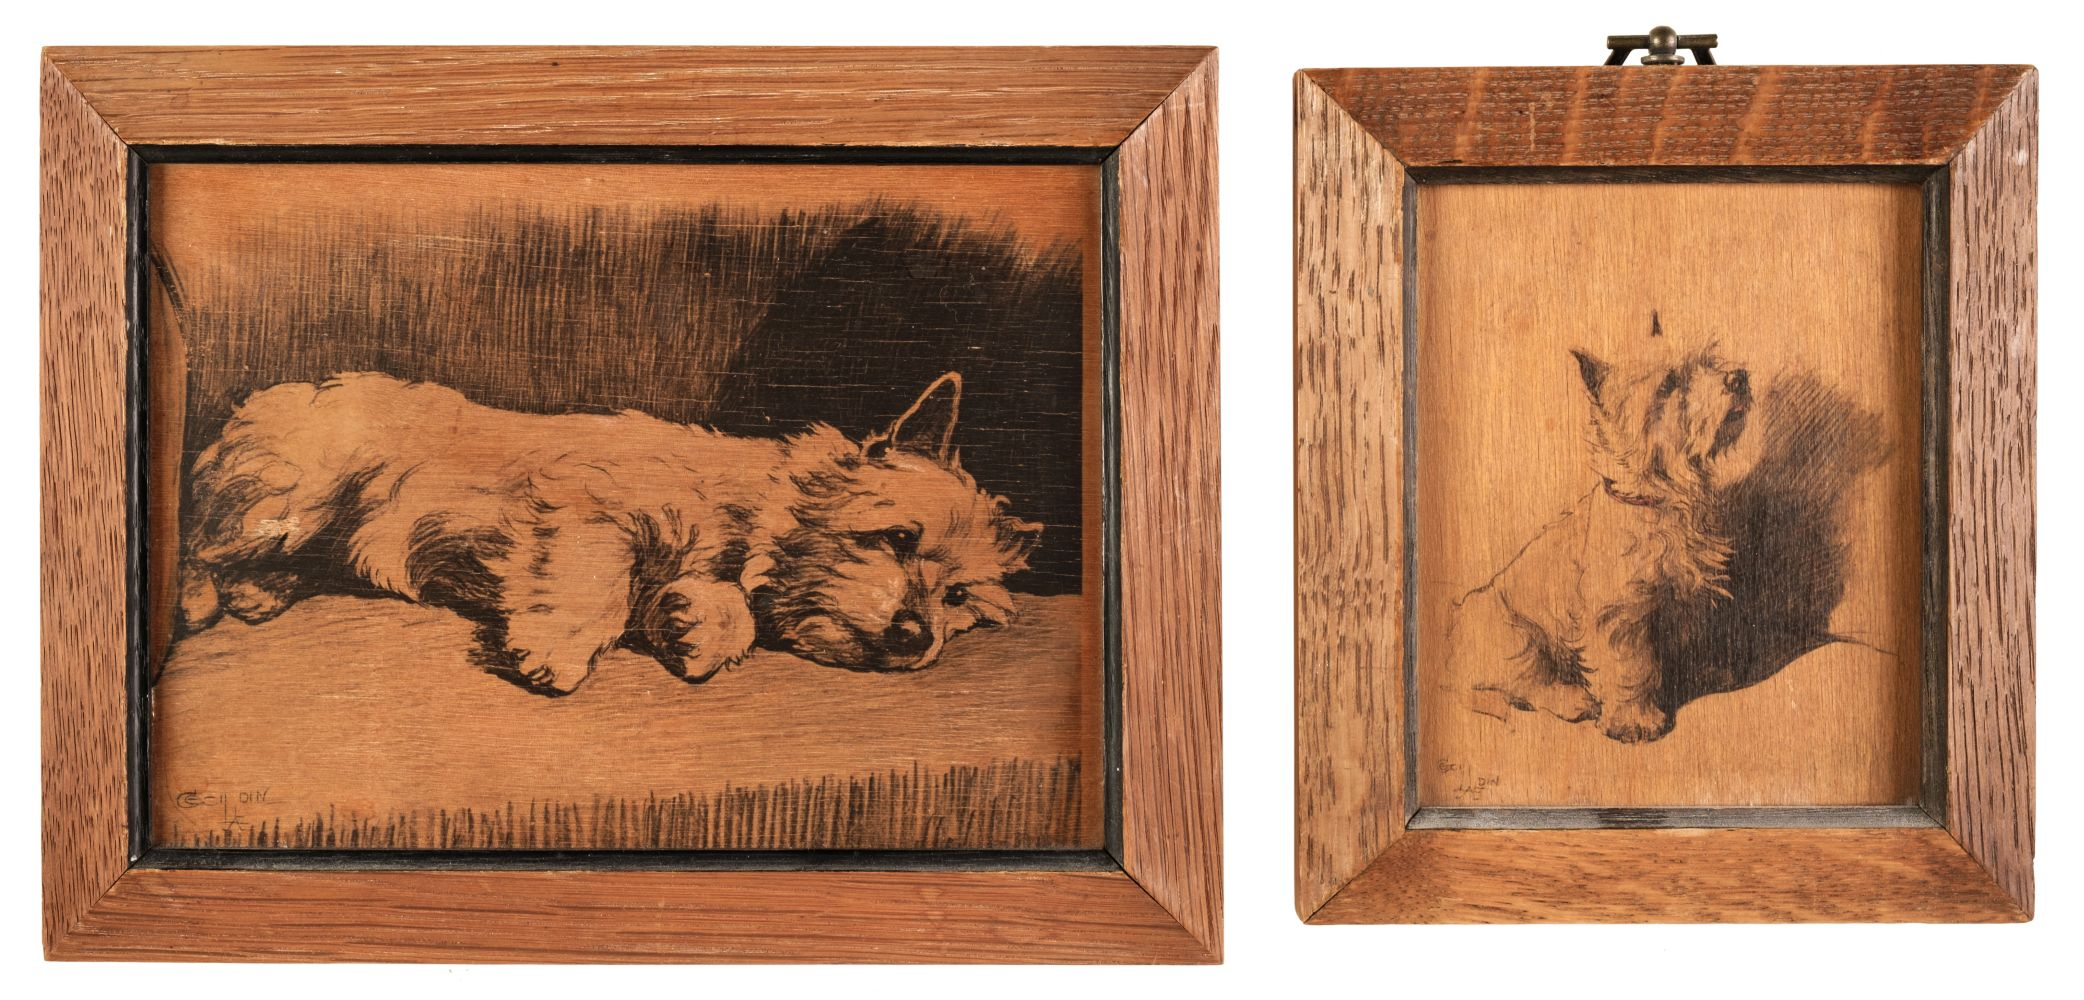 * Aldin (Cecil Charles Windsor, 1870 - 1935). Two studies of a West Highland Terrier